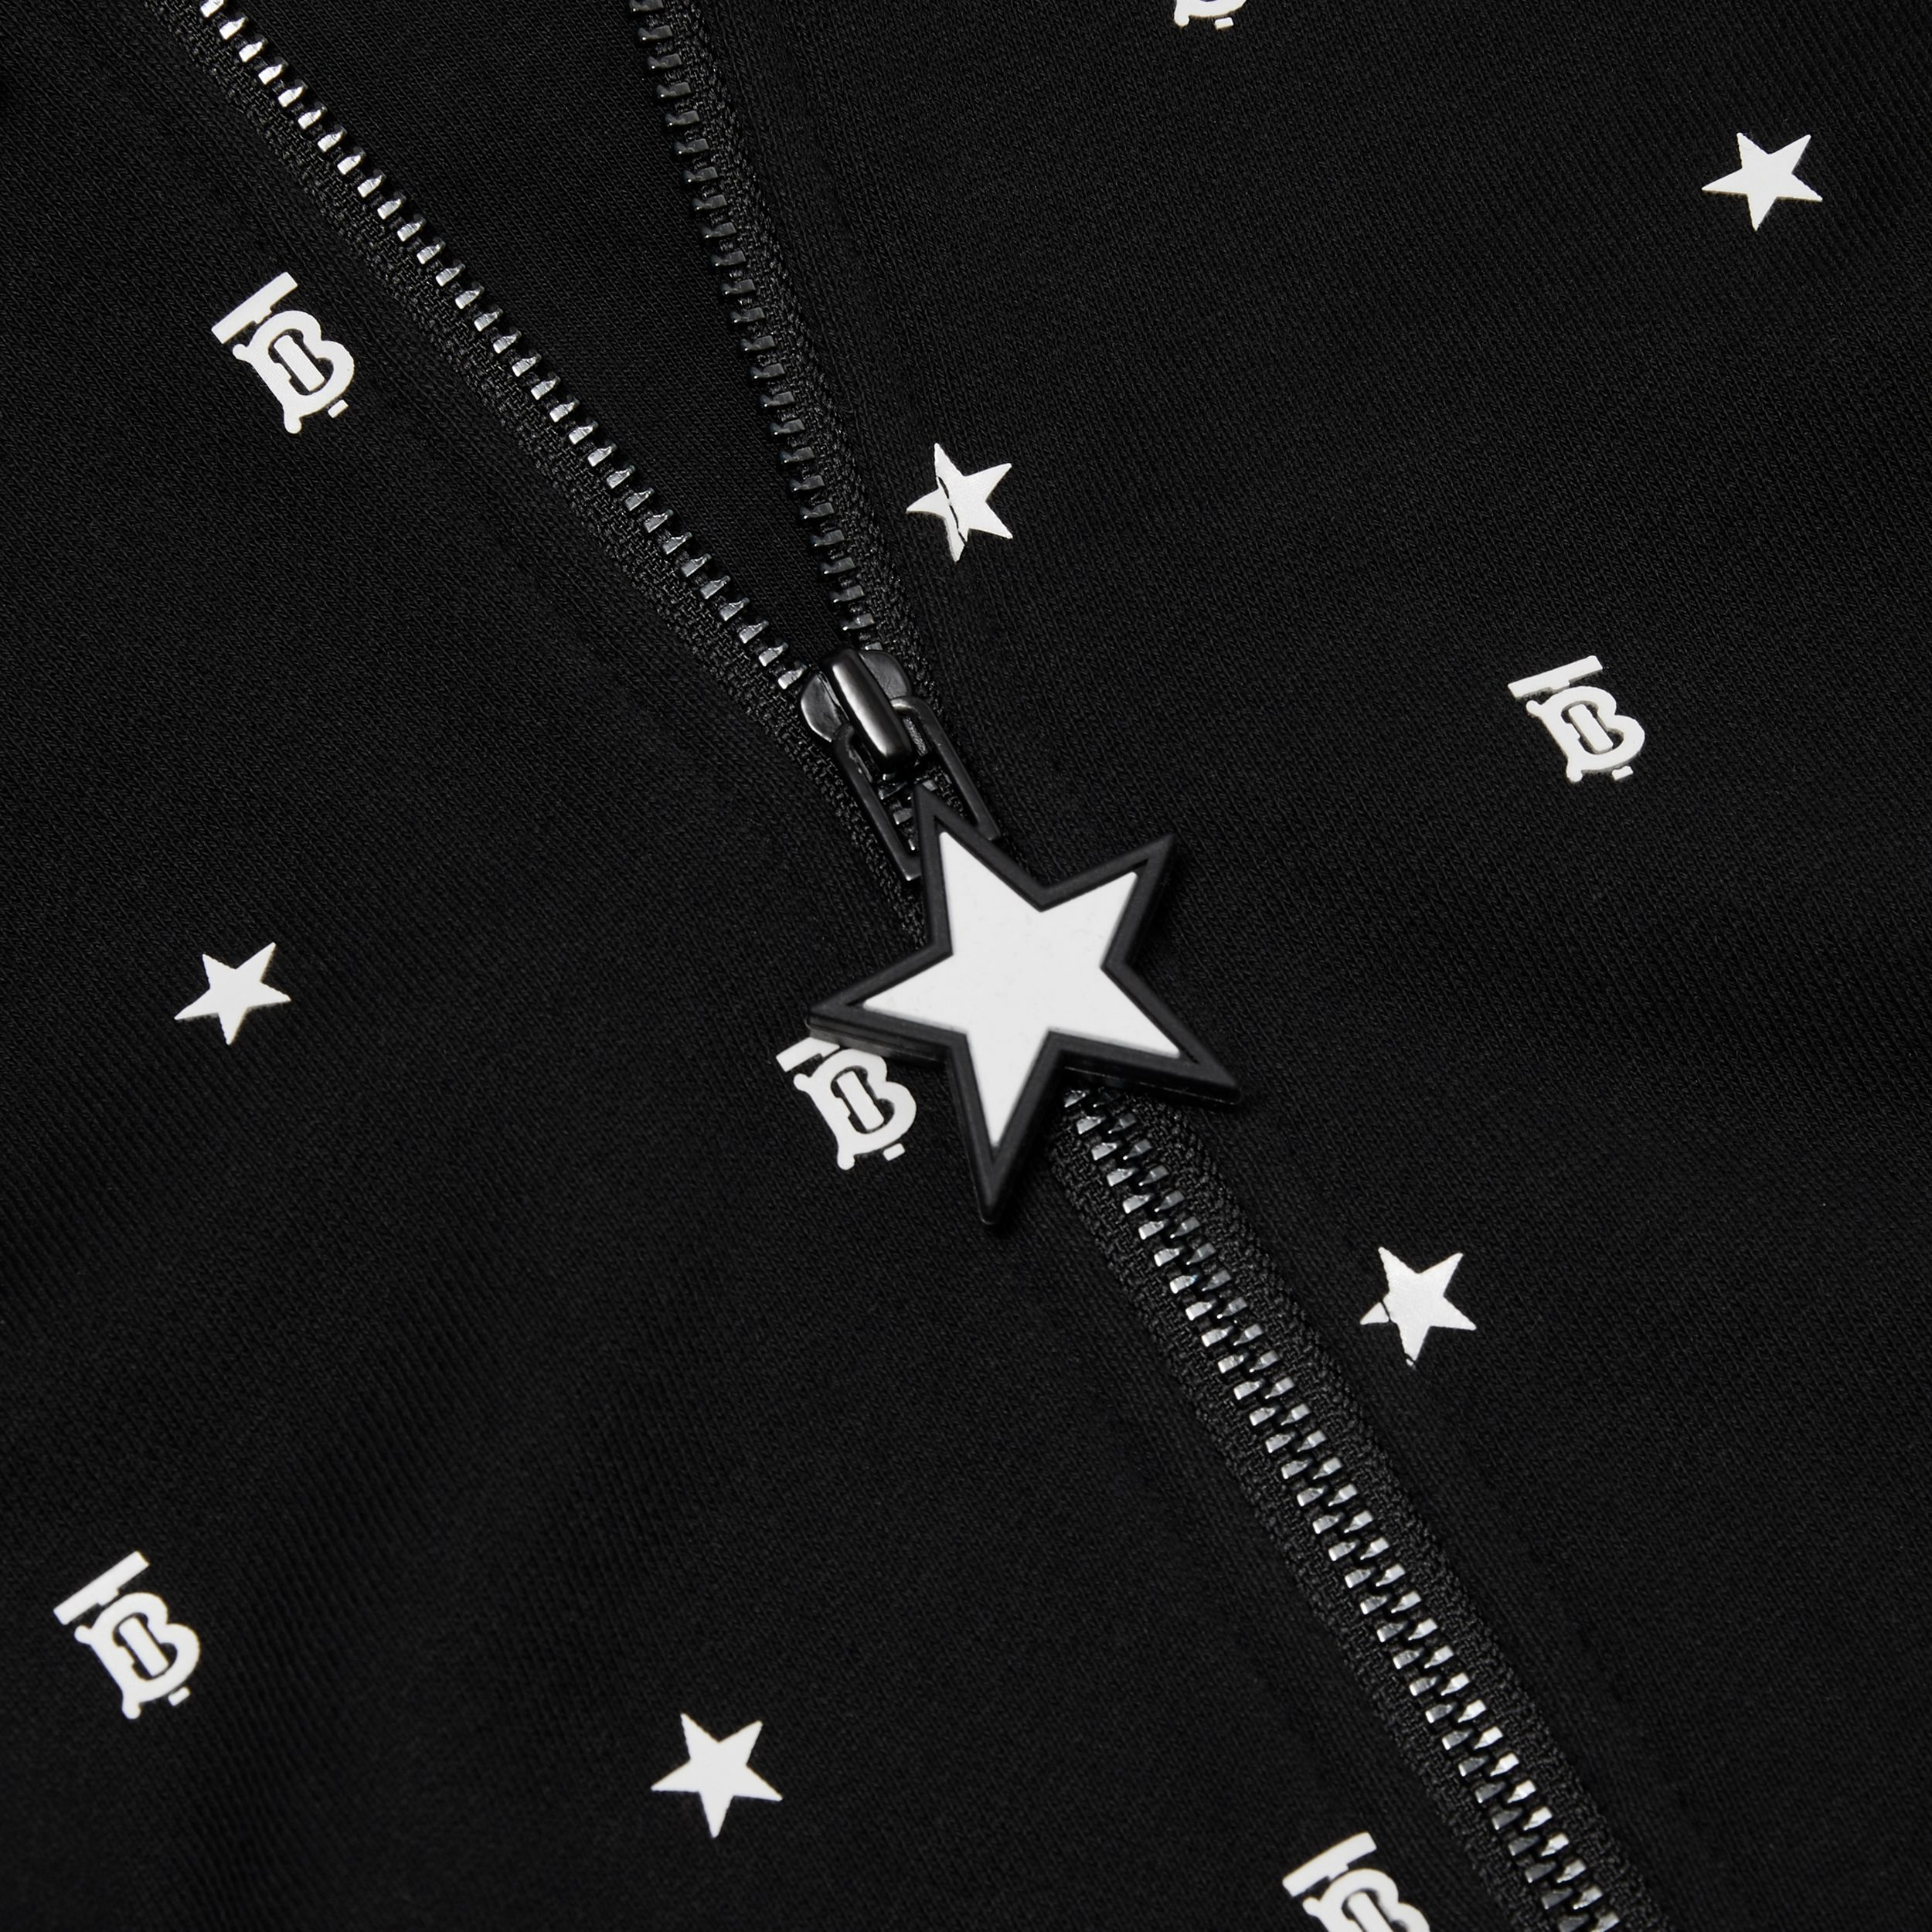 Star and Monogram Motif Cotton Hooded Top in Black - Children | Burberry - 2